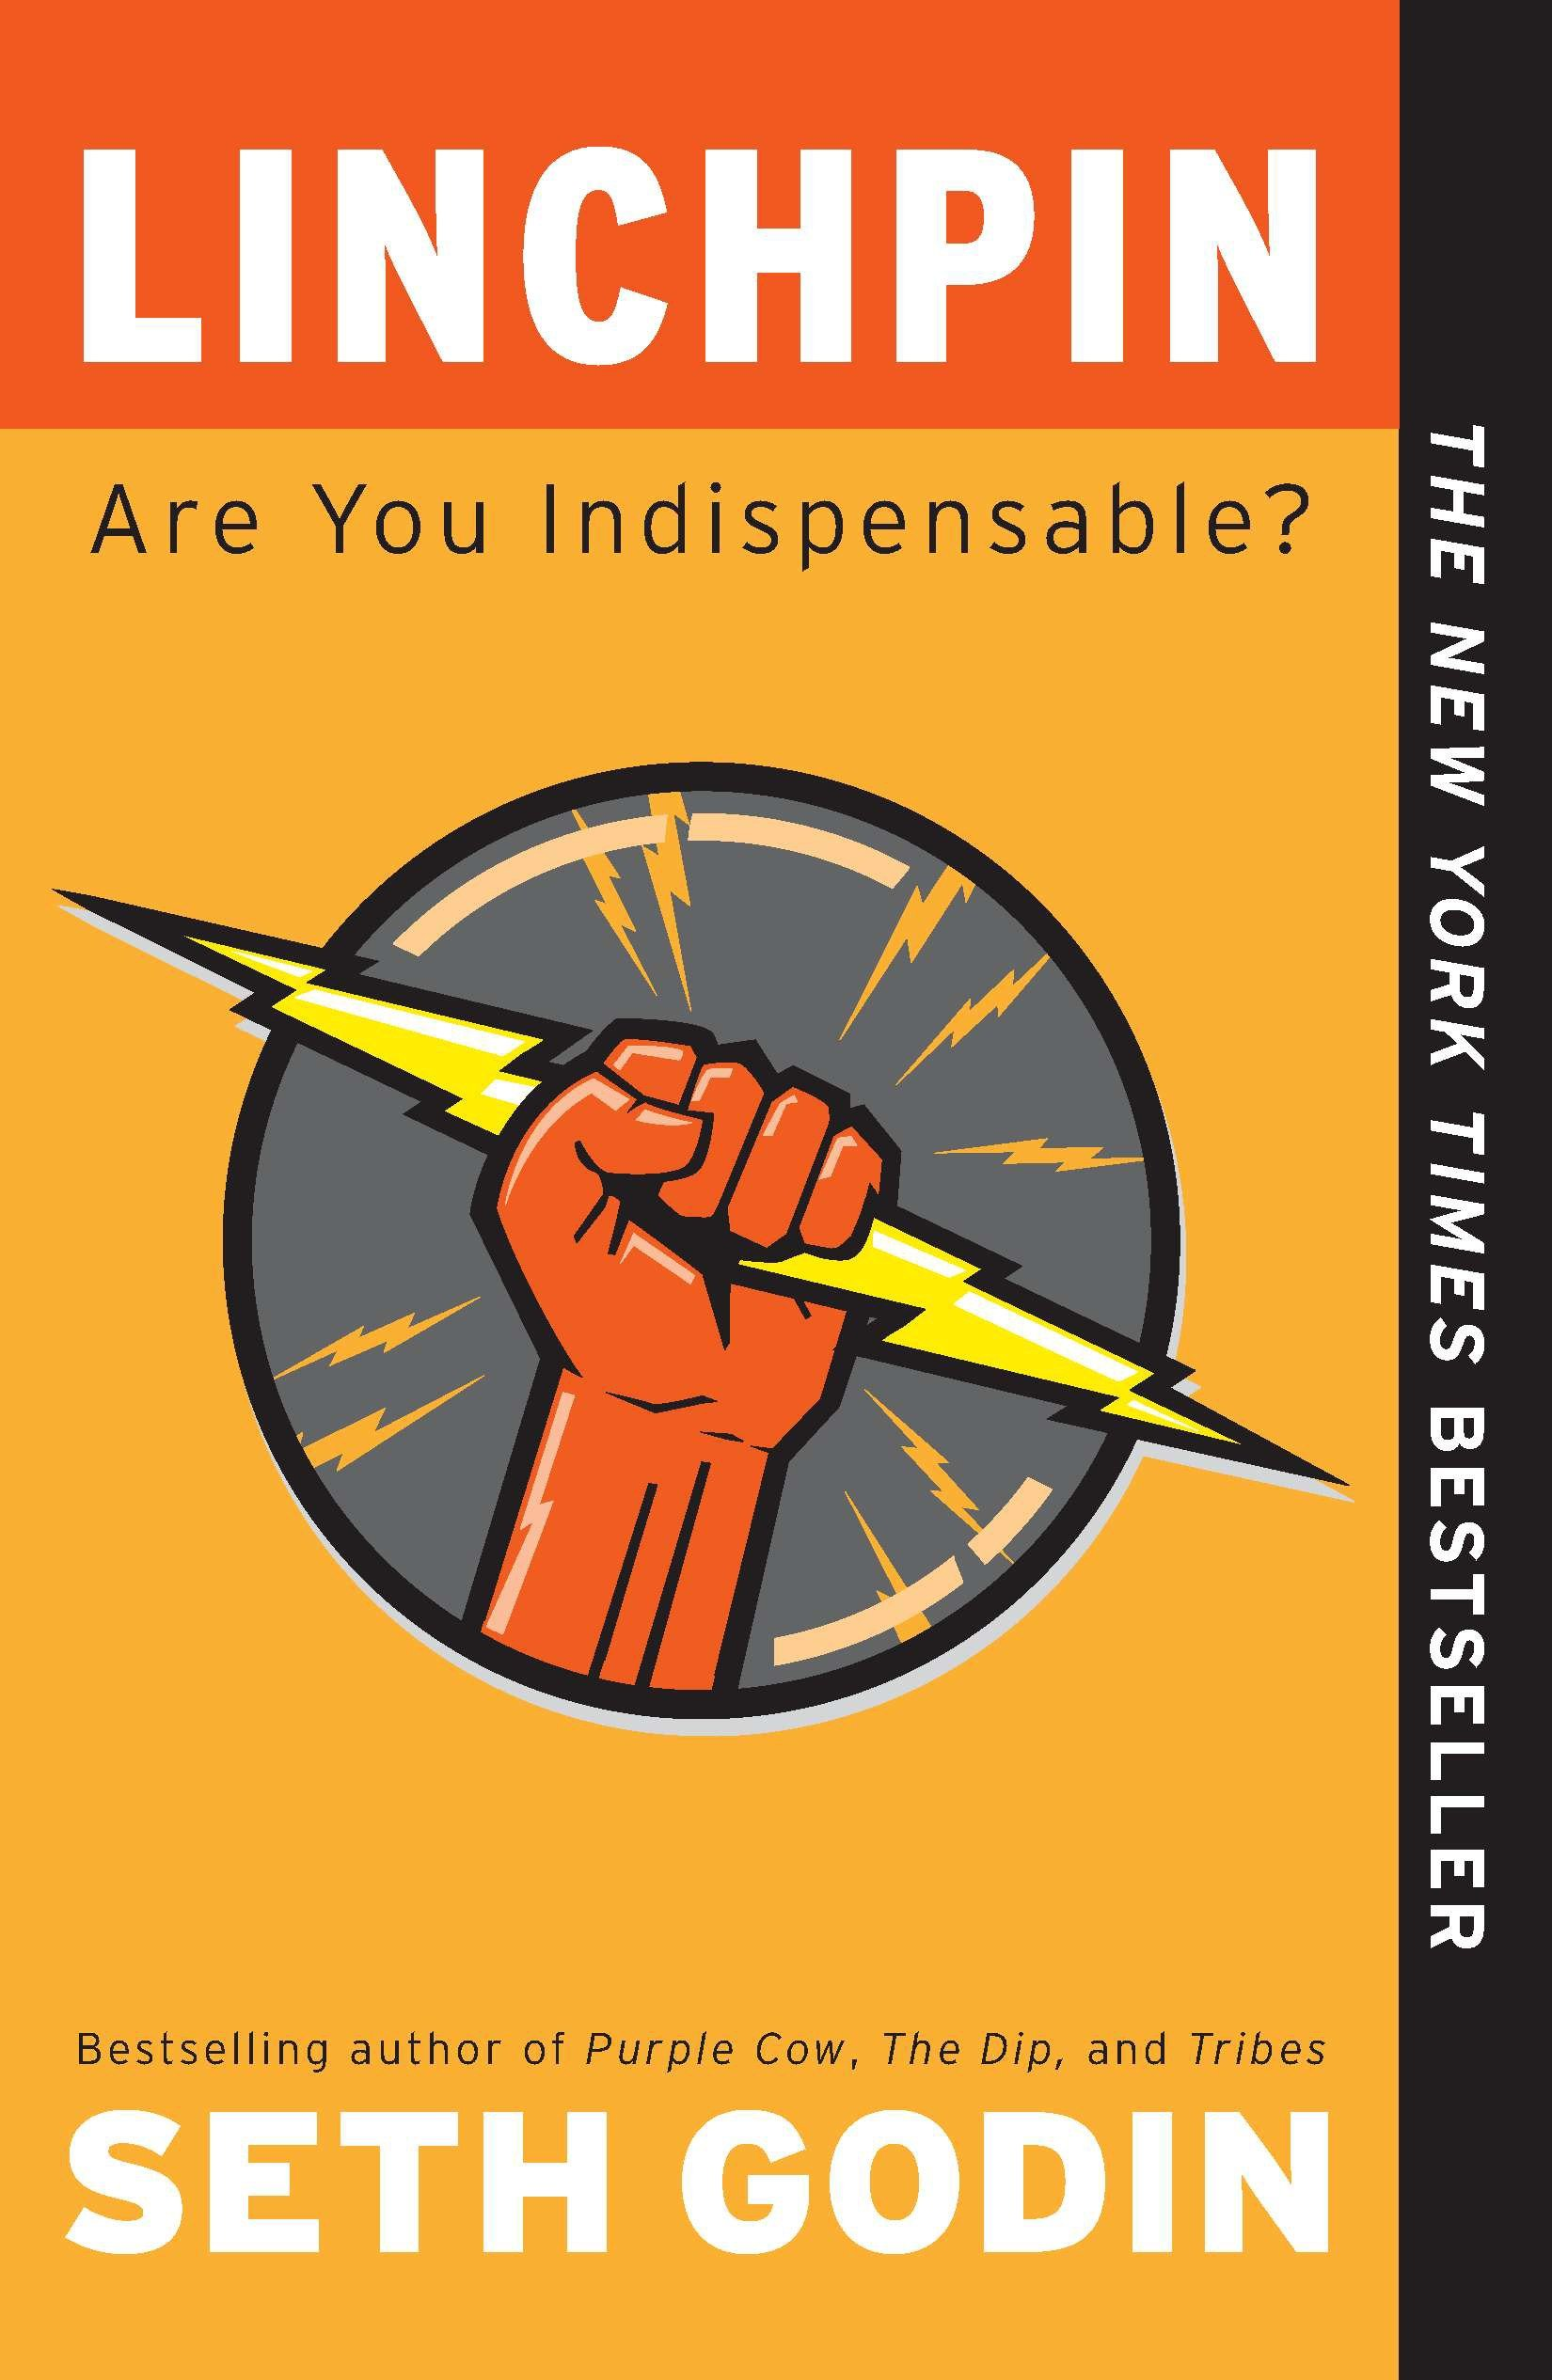 Linchpin are you indispensible? cover image